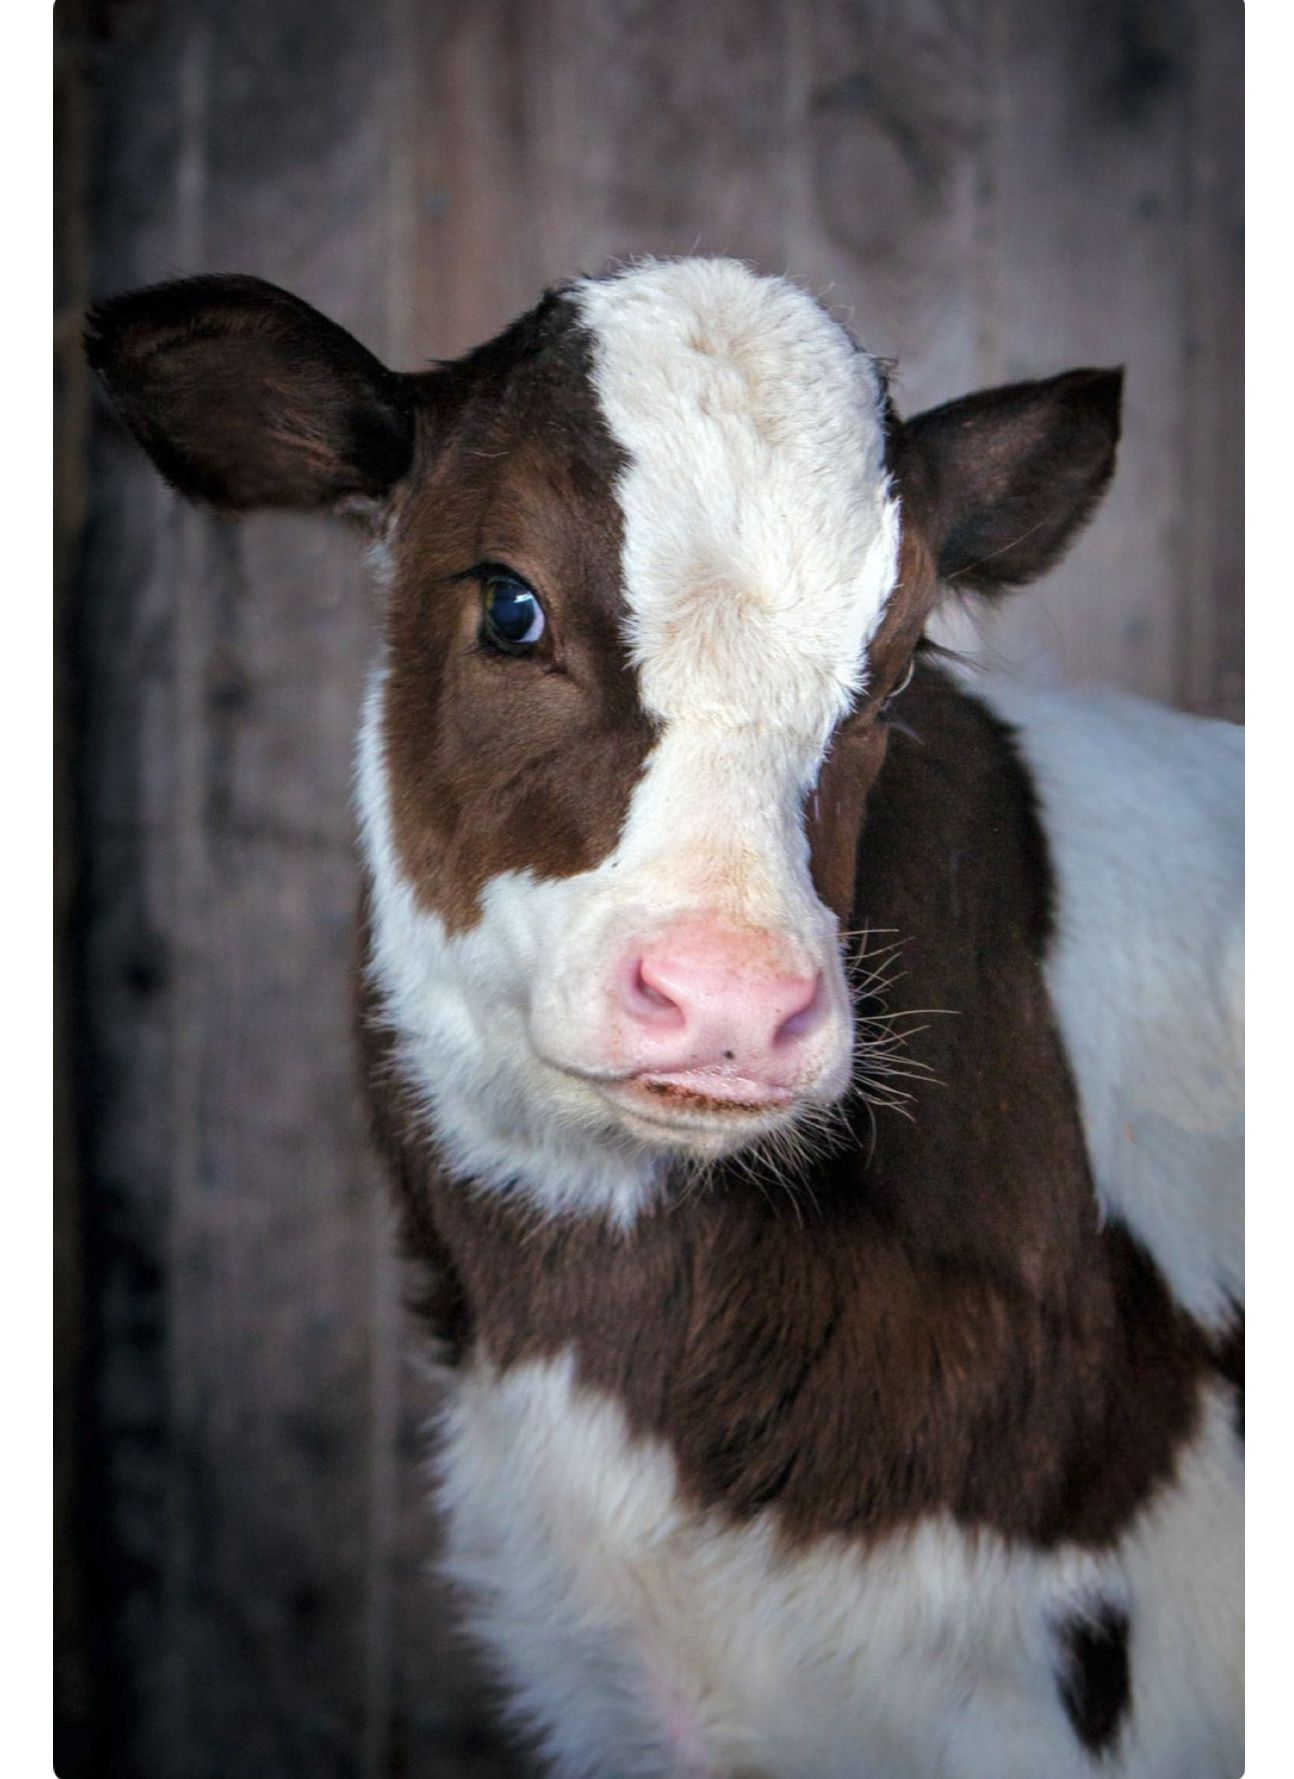 A Coy Look From A Cute Brown And White Calf Cute Baby Cow Cute Cows Cute Baby Animals